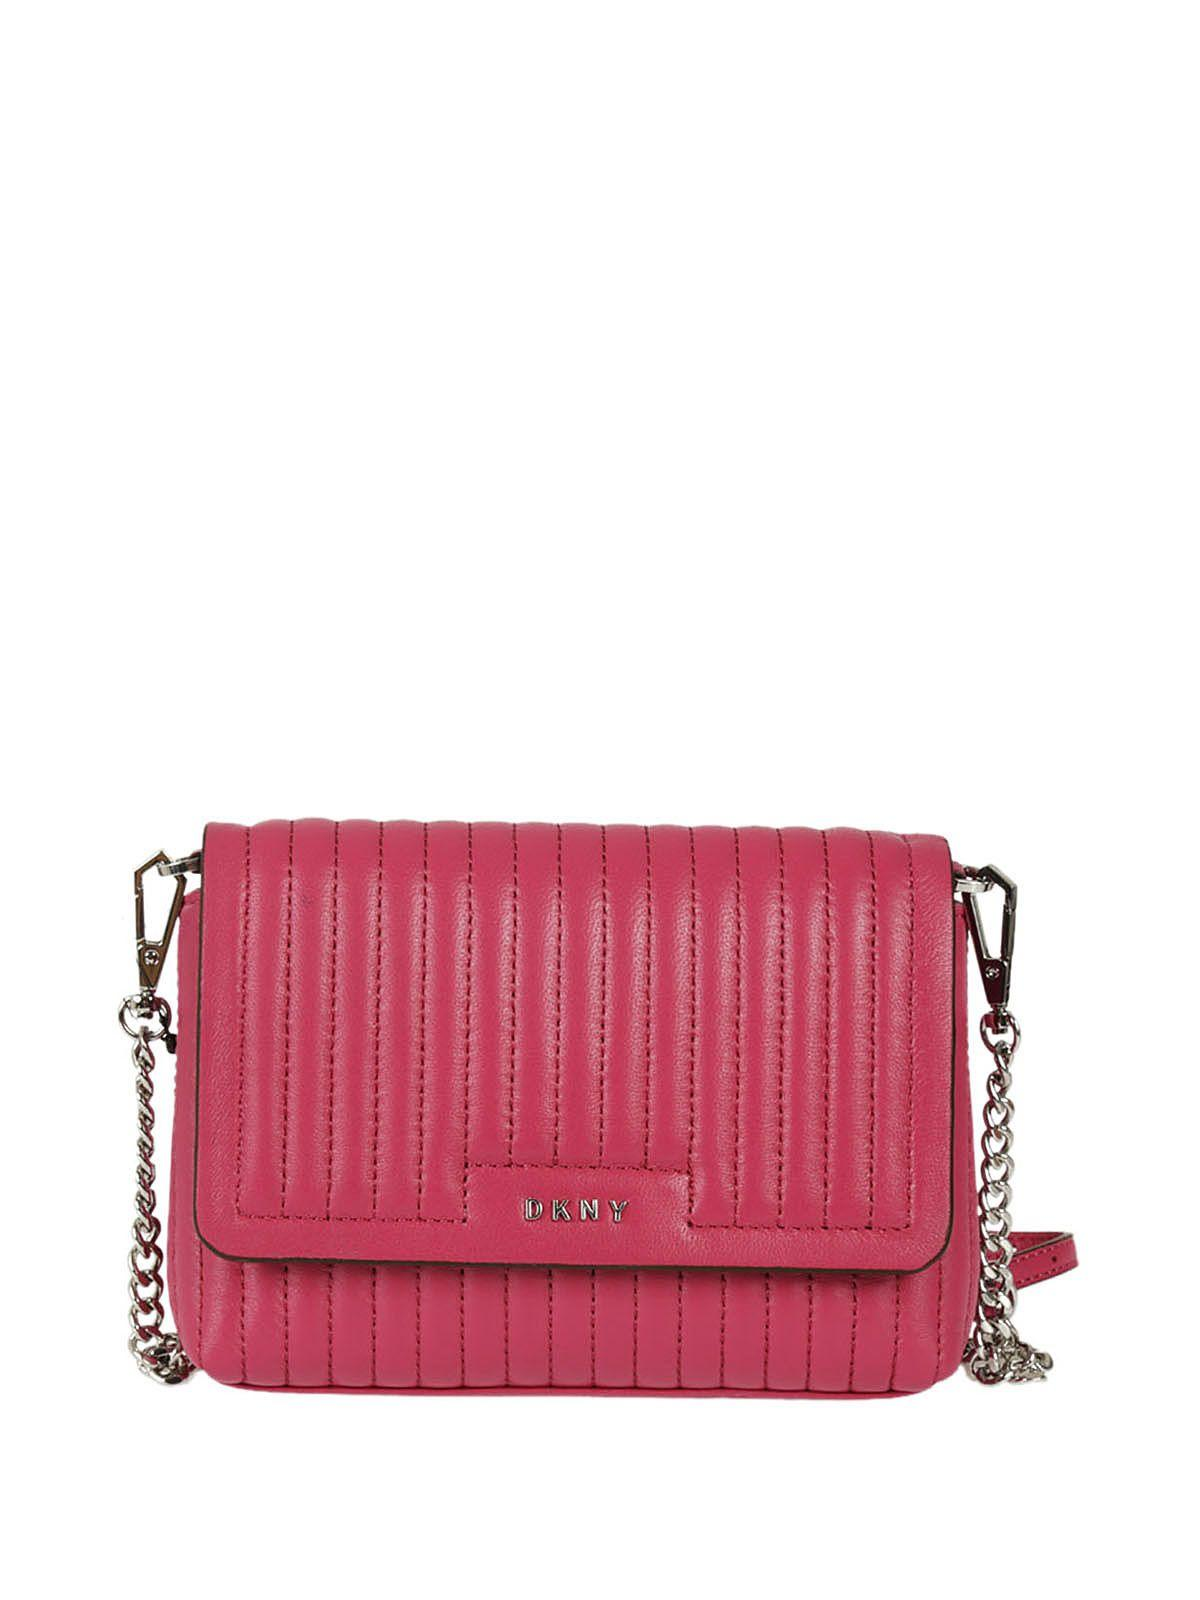 Dkny Quilted Shoulder Bag In Ciliegia